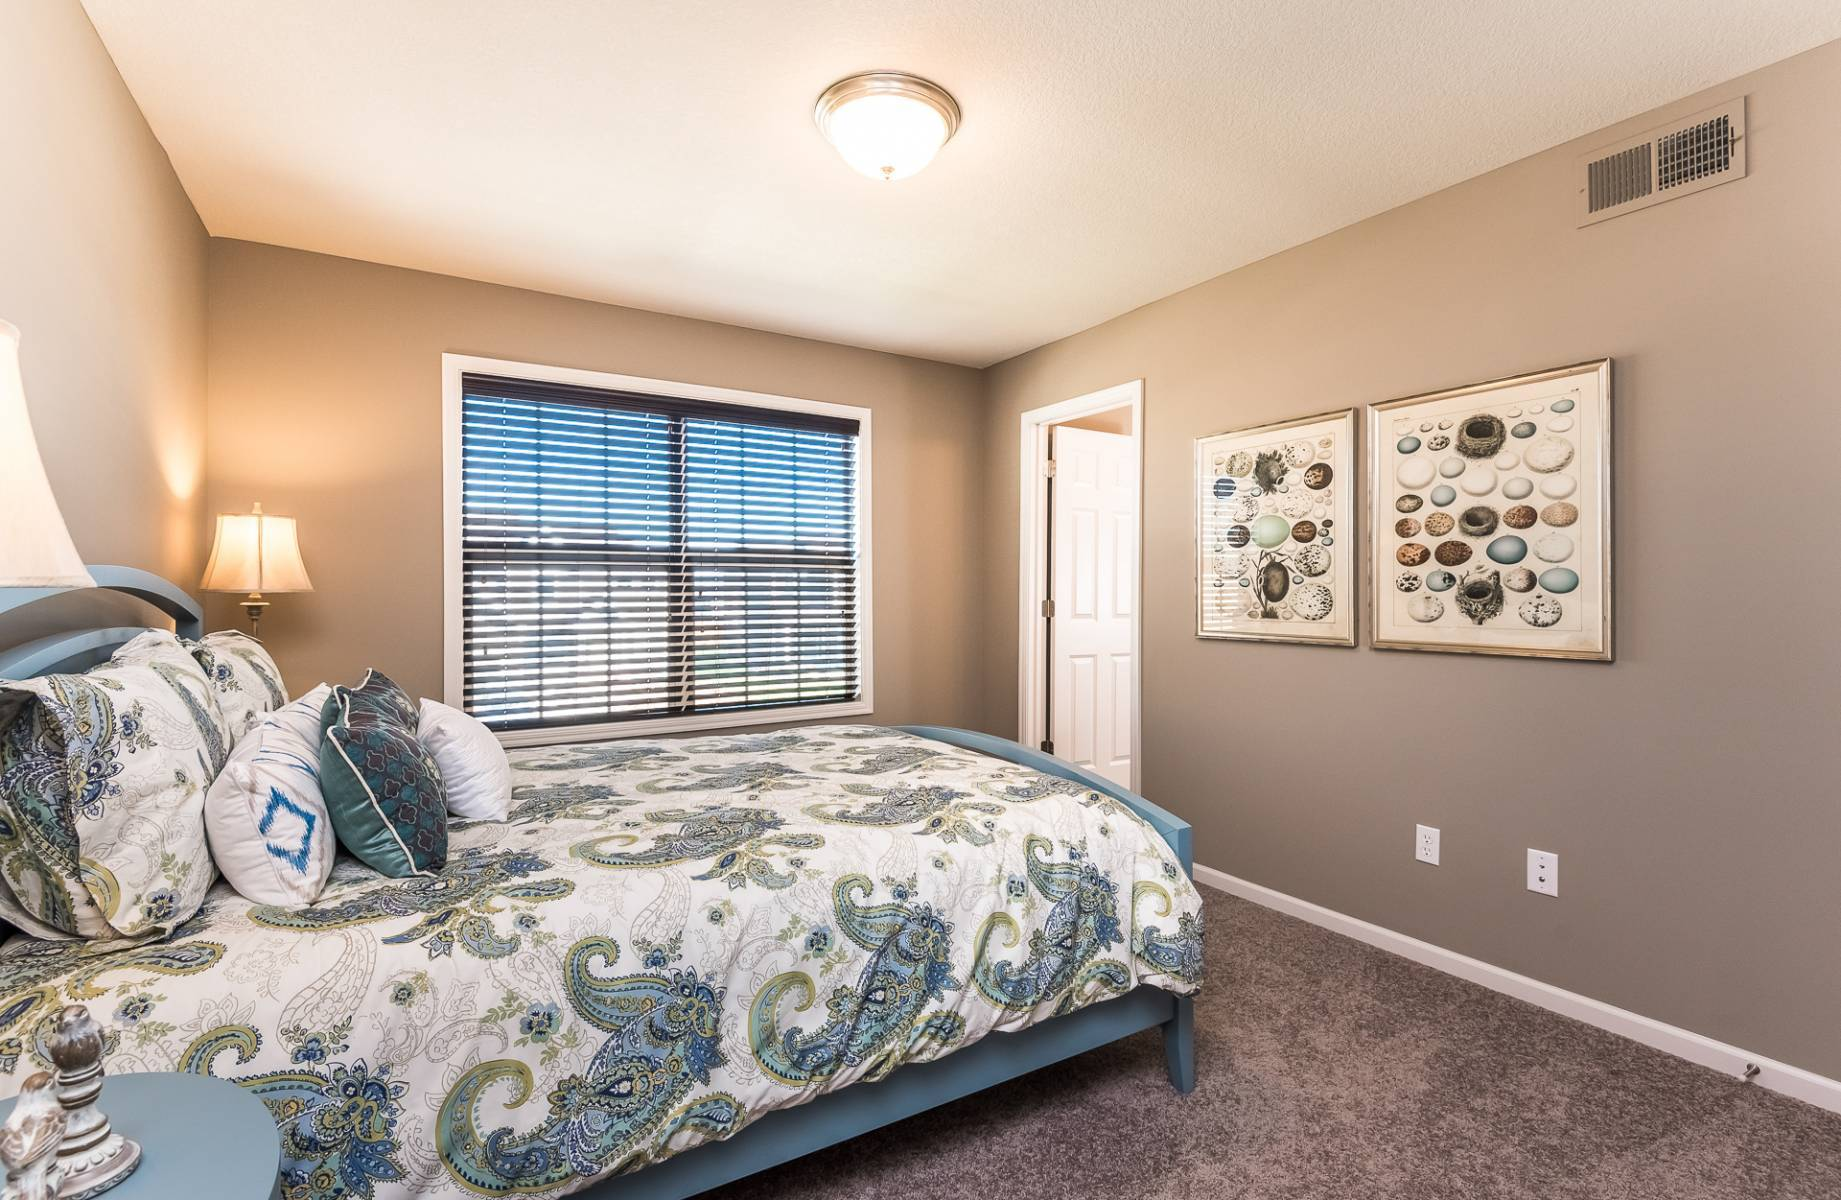 Bedroom featured in the Preston Ridge IV By Summit Homes in Kansas City, MO